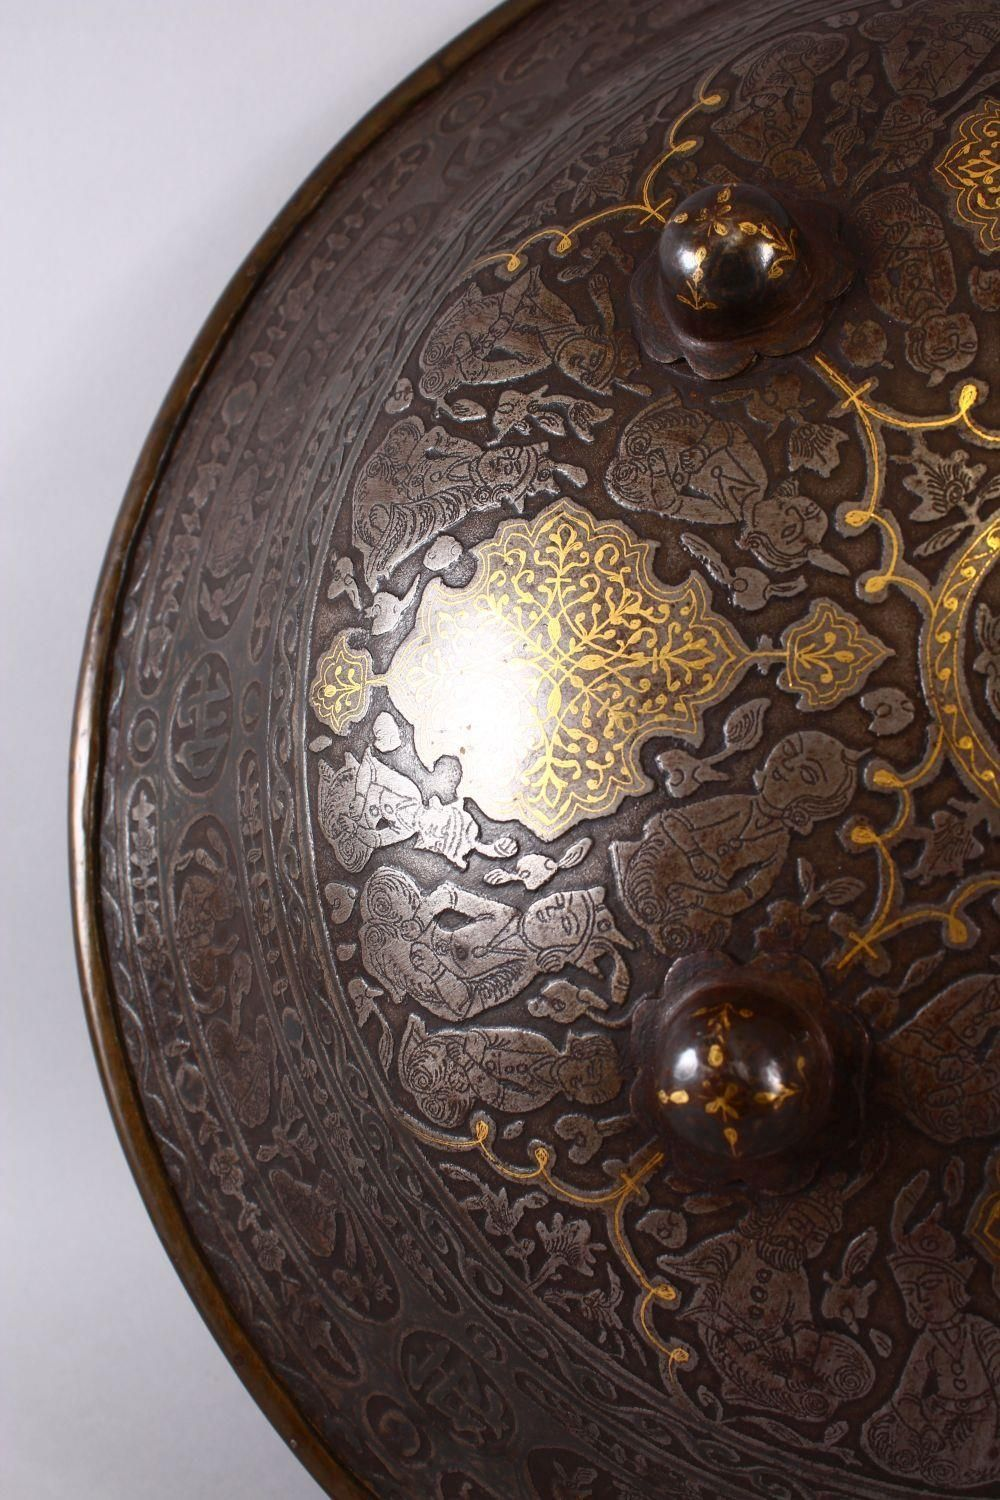 A LARGE 19TH CENTURY PERSIAN GILT DECORATED STEEL SHIELD, with carved decoration of figures, bands - Image 4 of 12